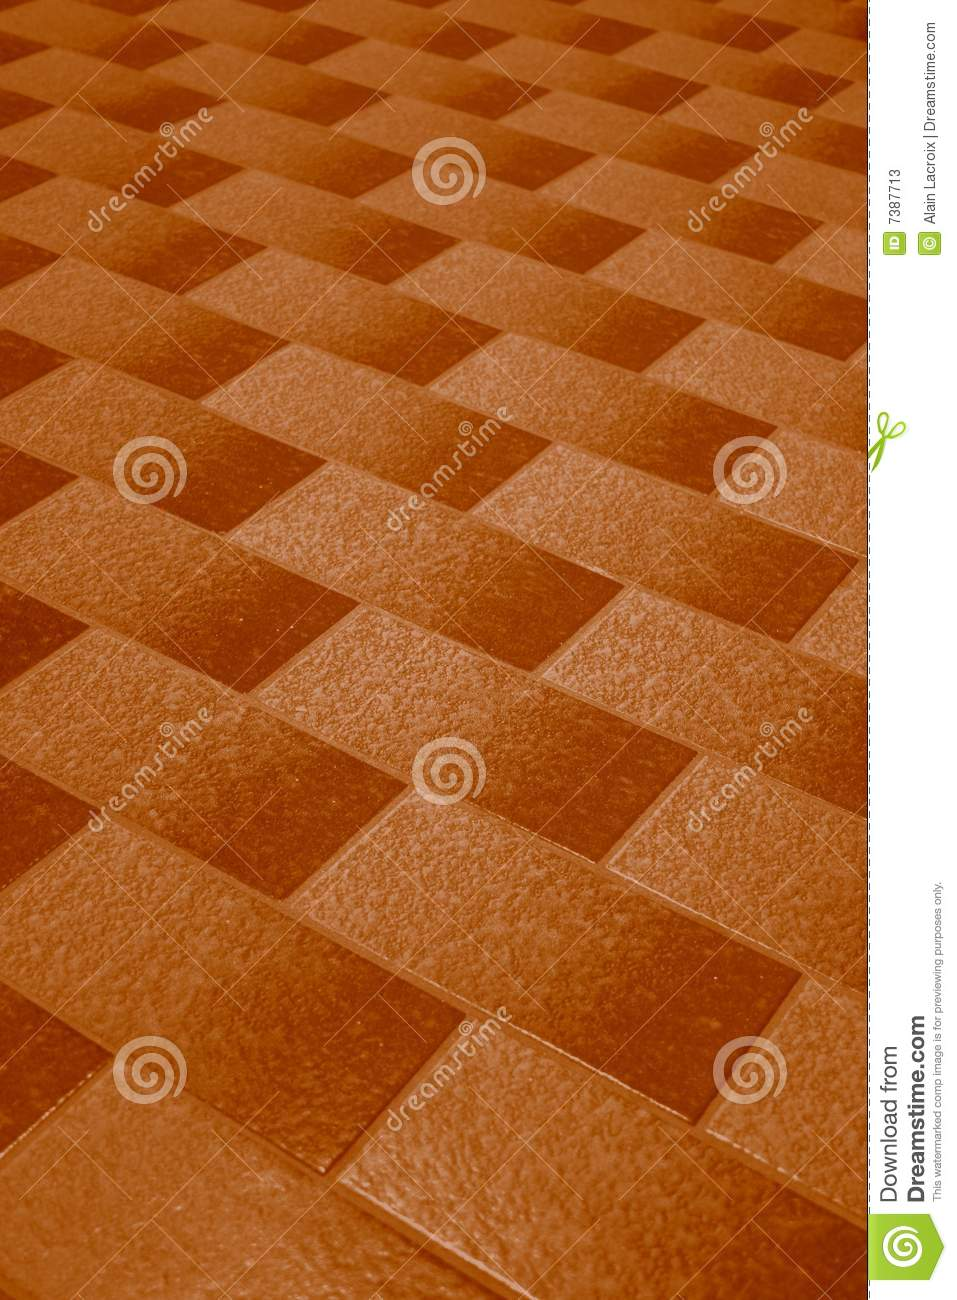 Brown floor tiles stock image image of glowing light 7387713 brown floor tiles dailygadgetfo Gallery